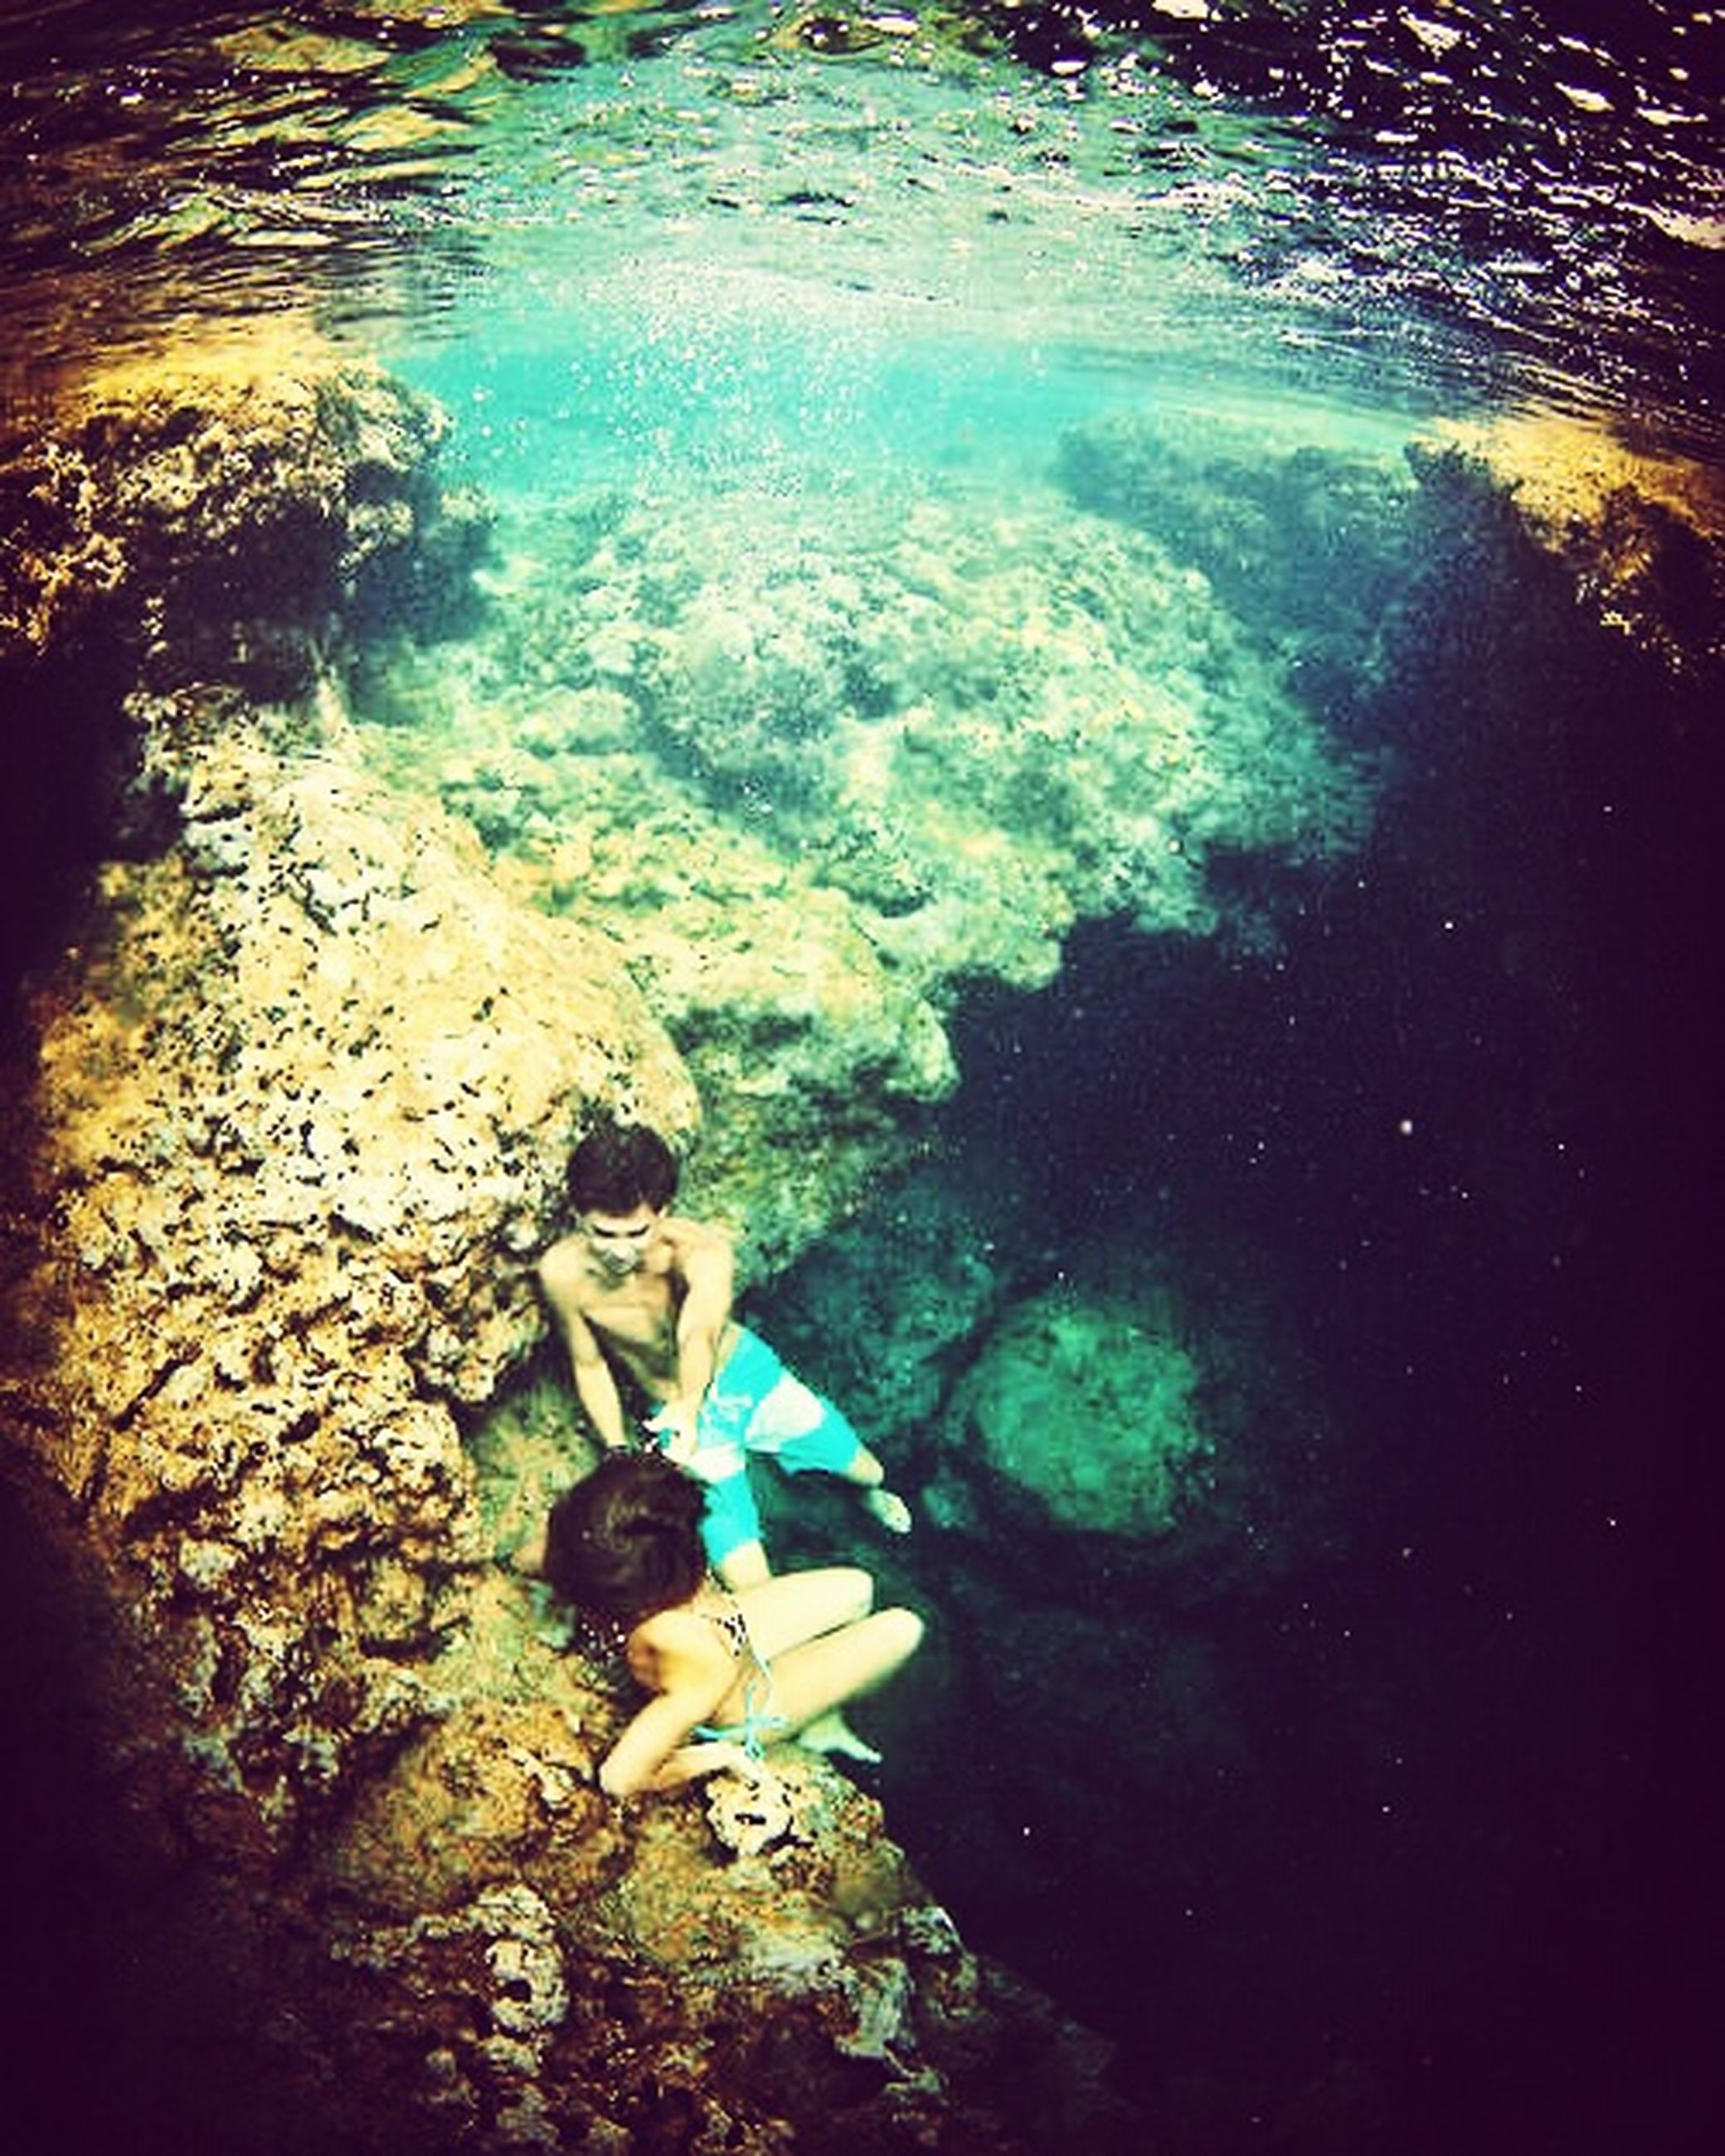 water, high angle view, one person, real people, leisure activity, swimming, day, full length, outdoors, women, nature, beauty in nature, underwater, young women, young adult, one young woman only, undersea, people